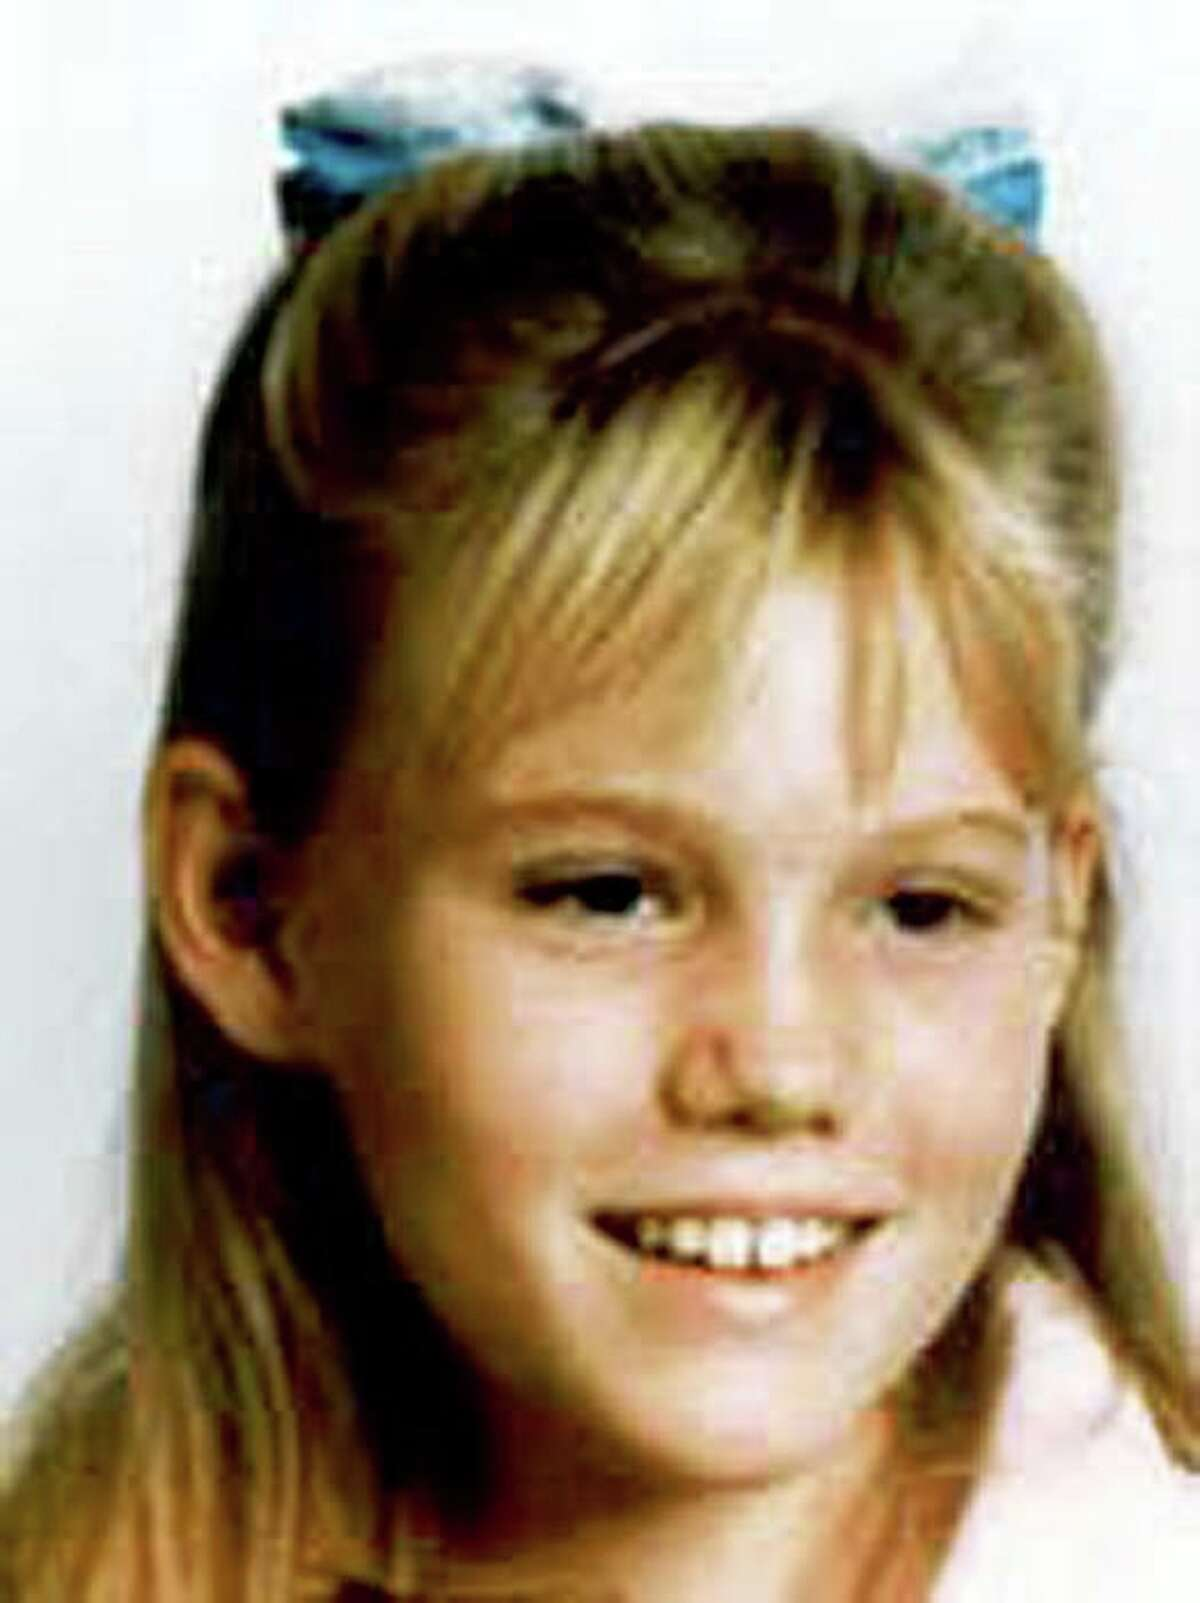 (FILES): This undated file photo obtained August 27, 2009 from the United States Federal Bureau of Investigation (FBI) shows Jaycee Lee Dugard, who had been missing since she was kidnapped 18 years ago at age 11, and who walked into a California police station in good health and identified herself, police said August 27, 2009. Jaycee Lee Dugard, now 29, came into the Concord, California, police station on August 26, 2009 and said she was the missing girl, police officials said.